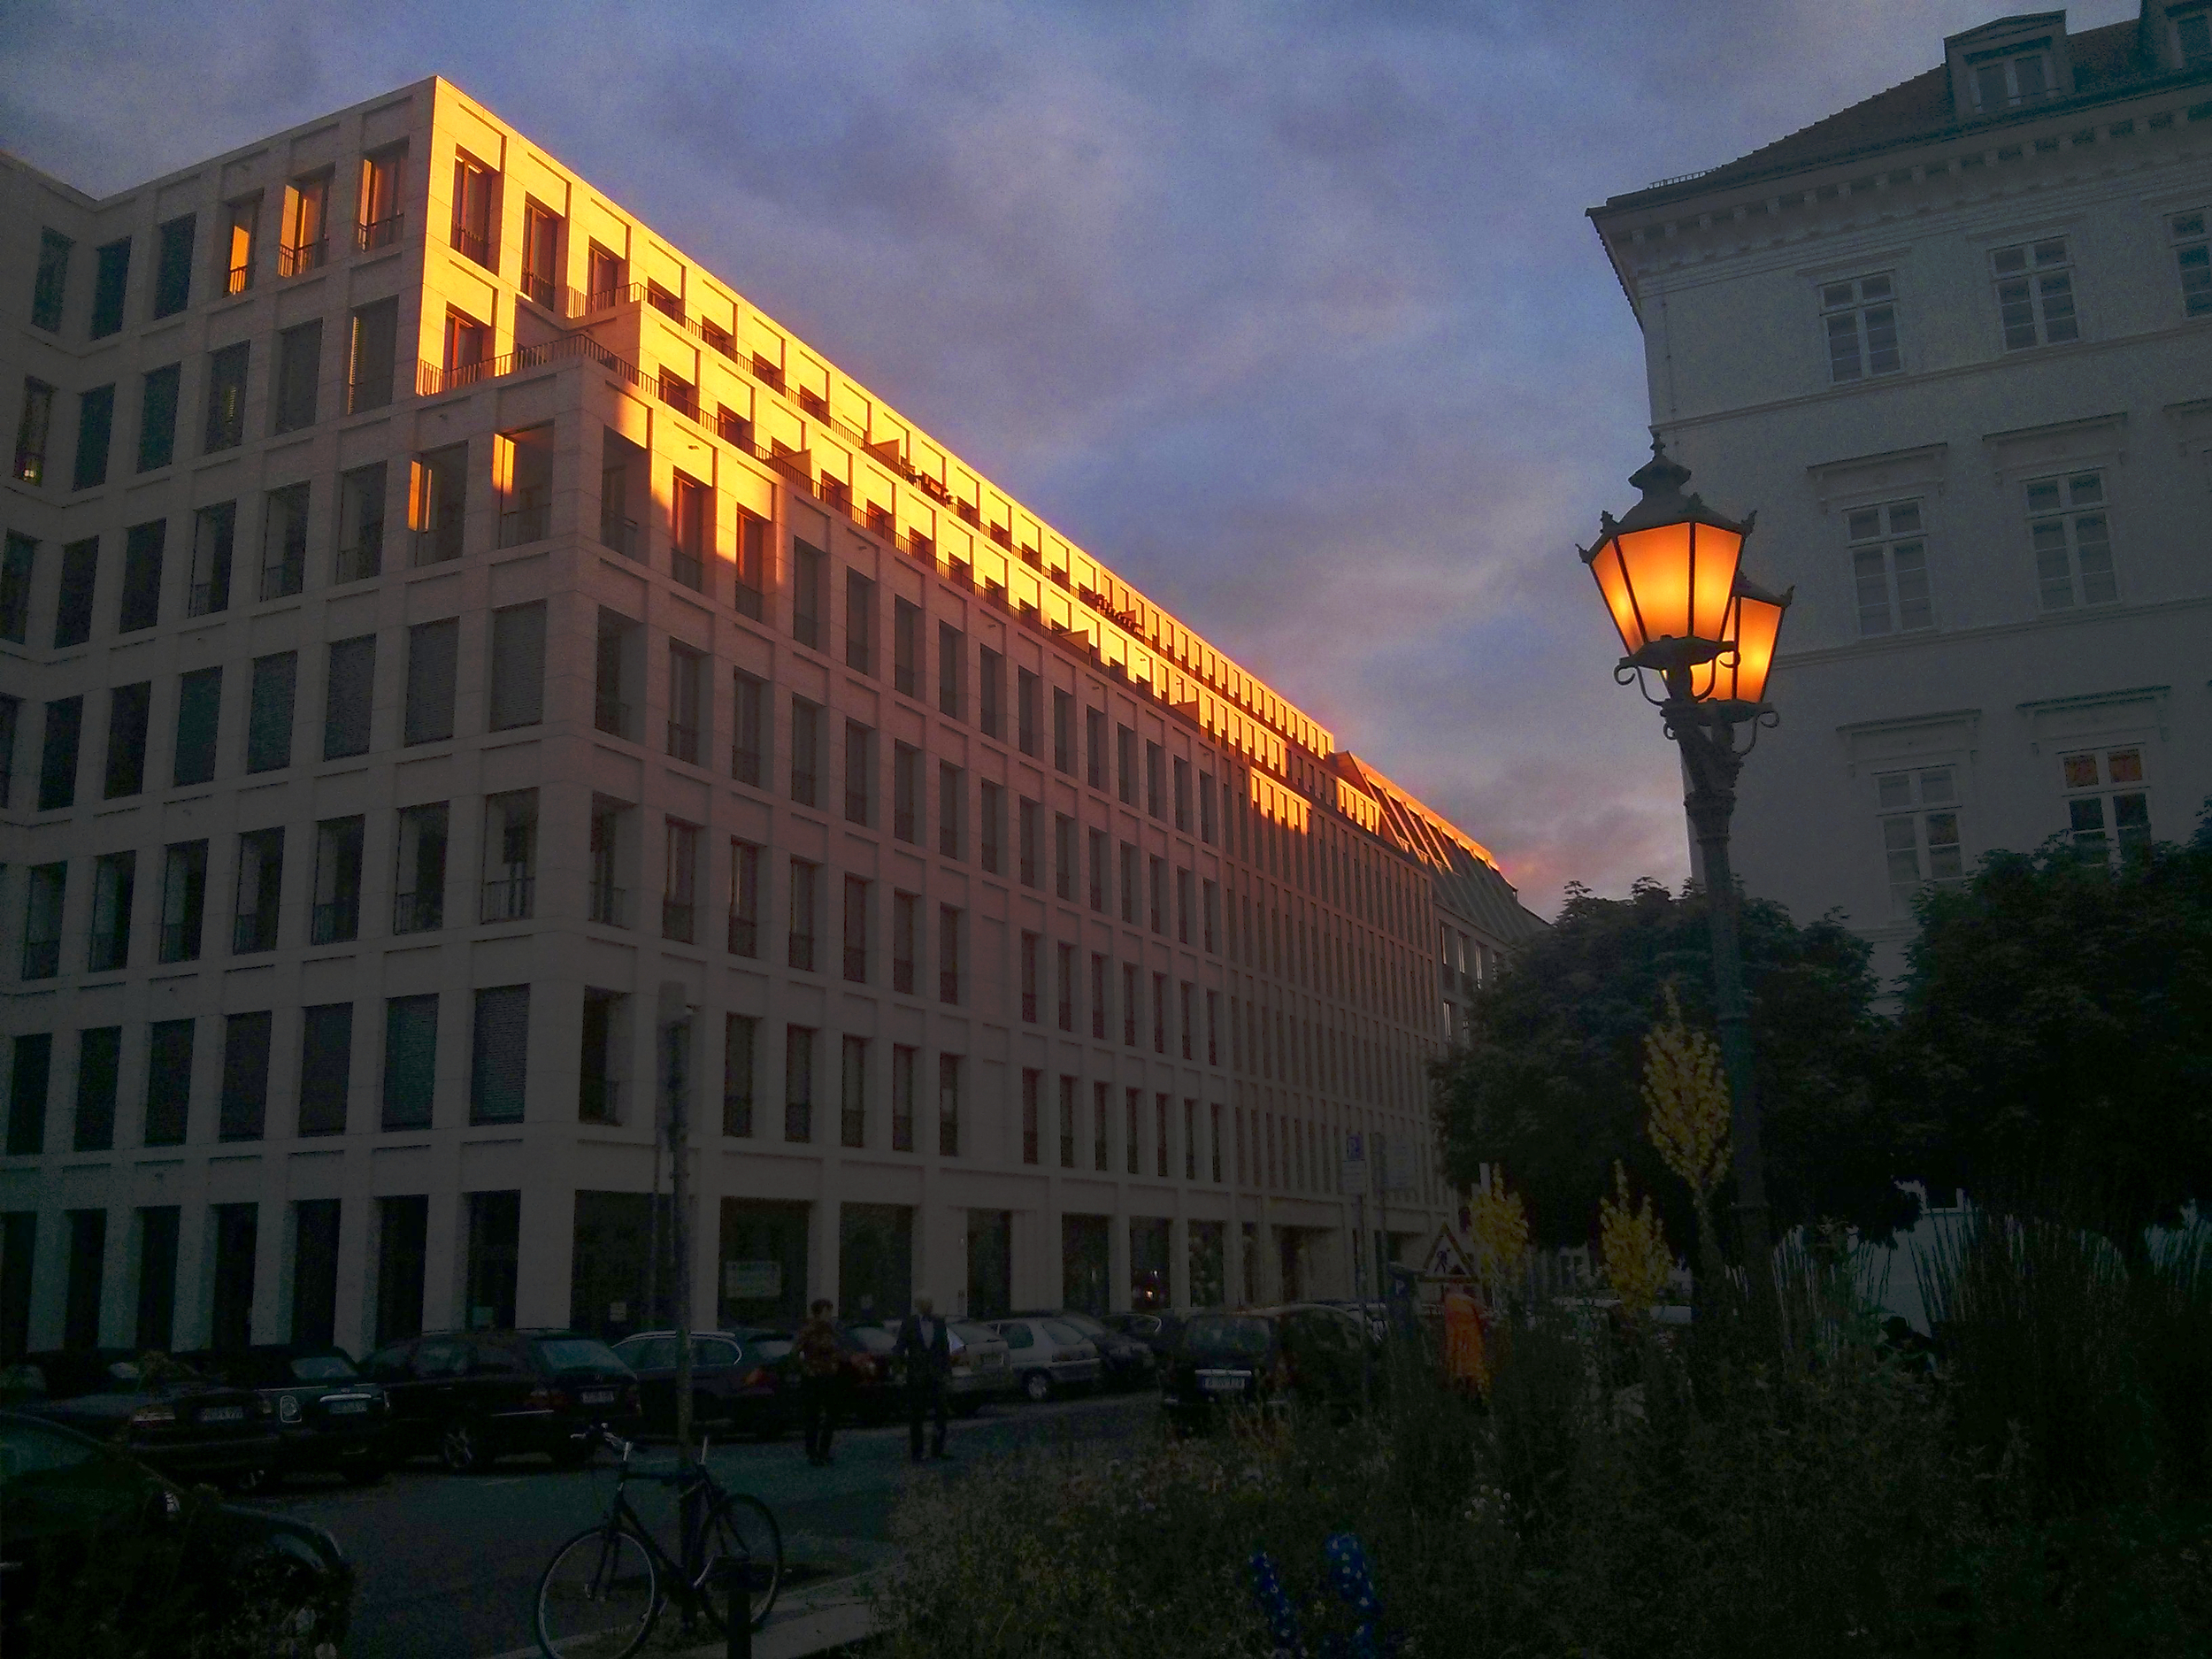 June 9, 2014: Day and night in Berlin